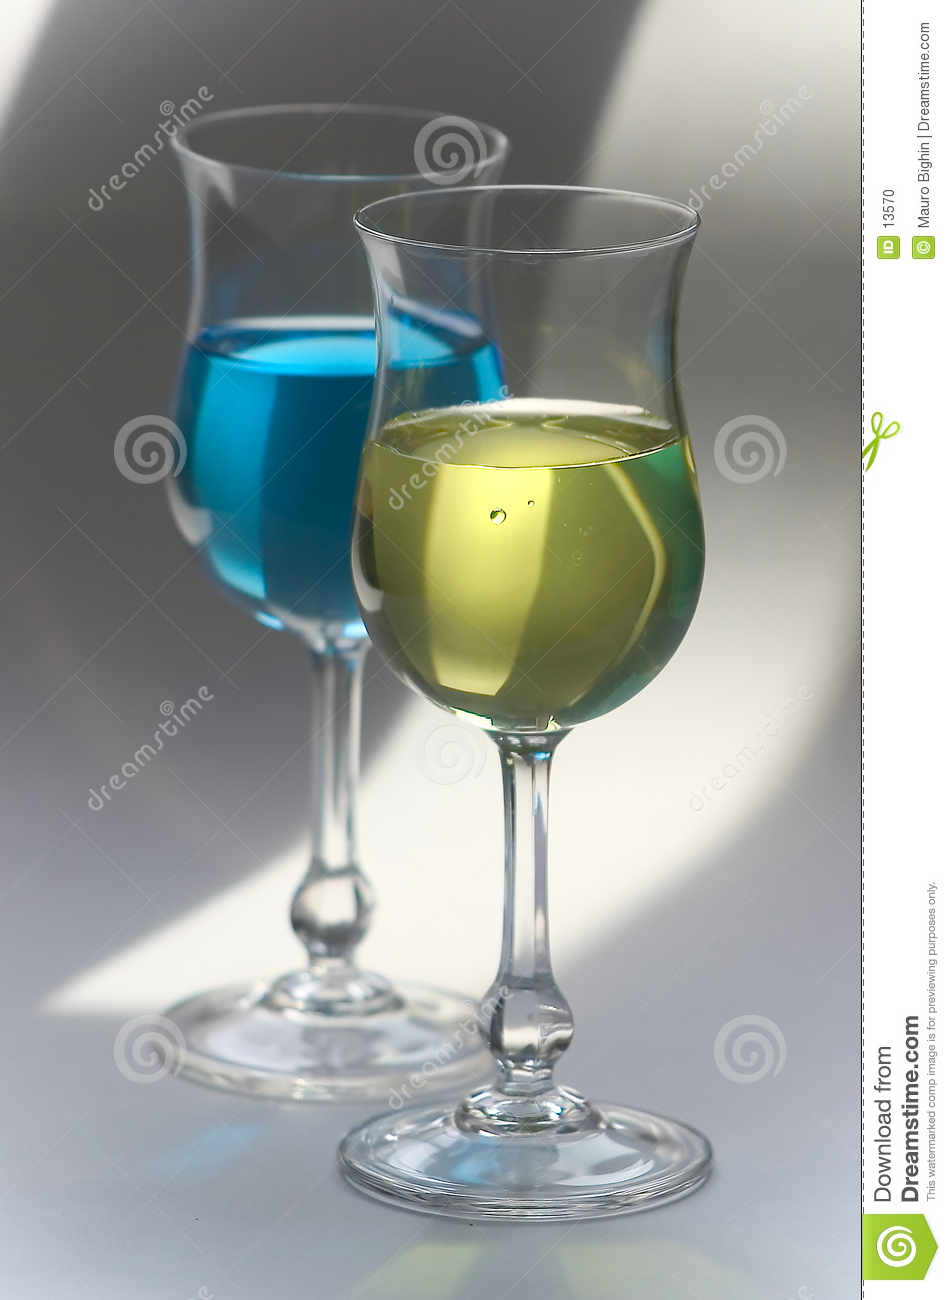 Yellow and blue drinks in glasses